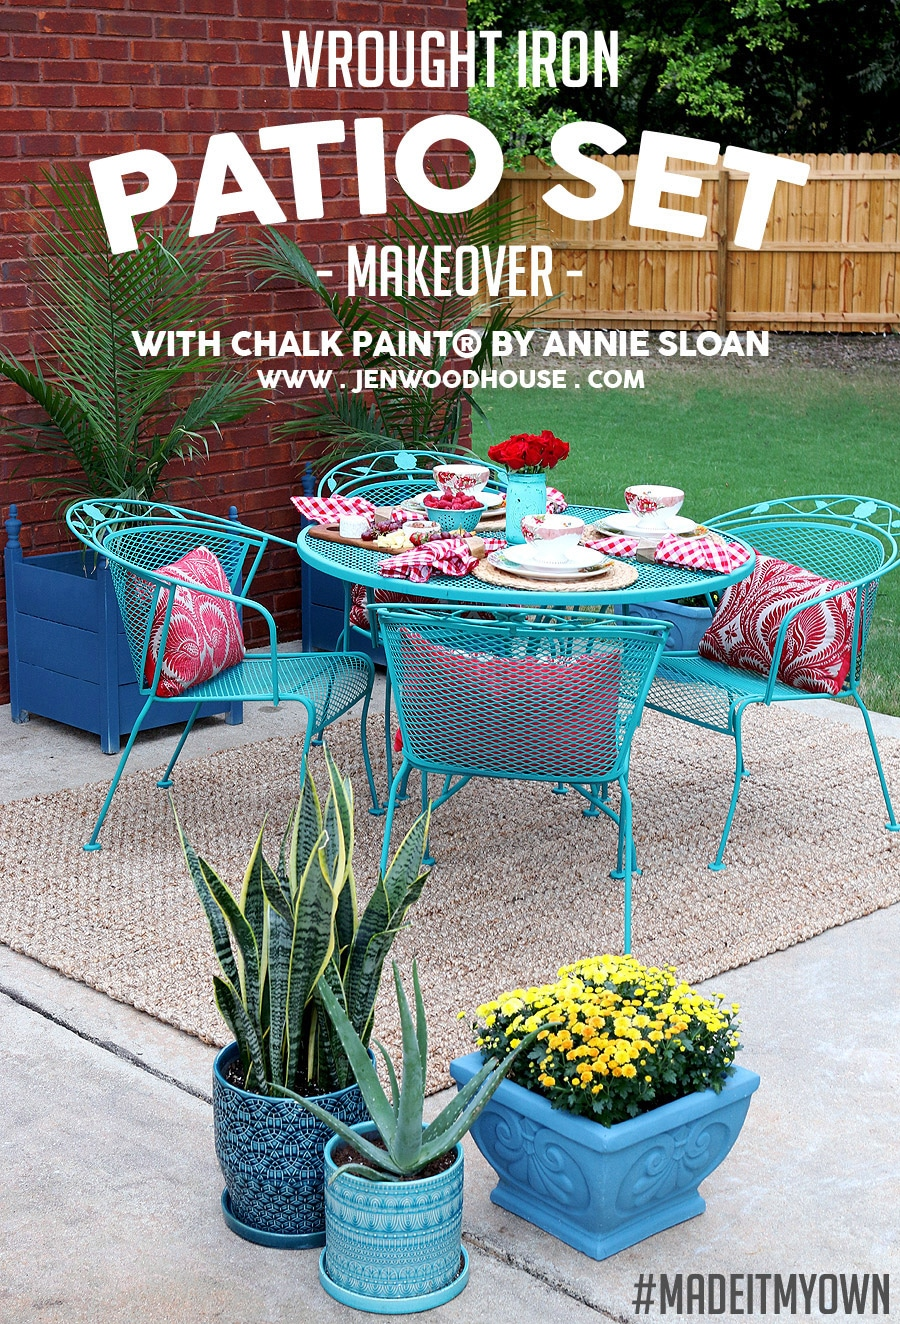 how to paint wrought iron patio furniture with chalk paint by annie